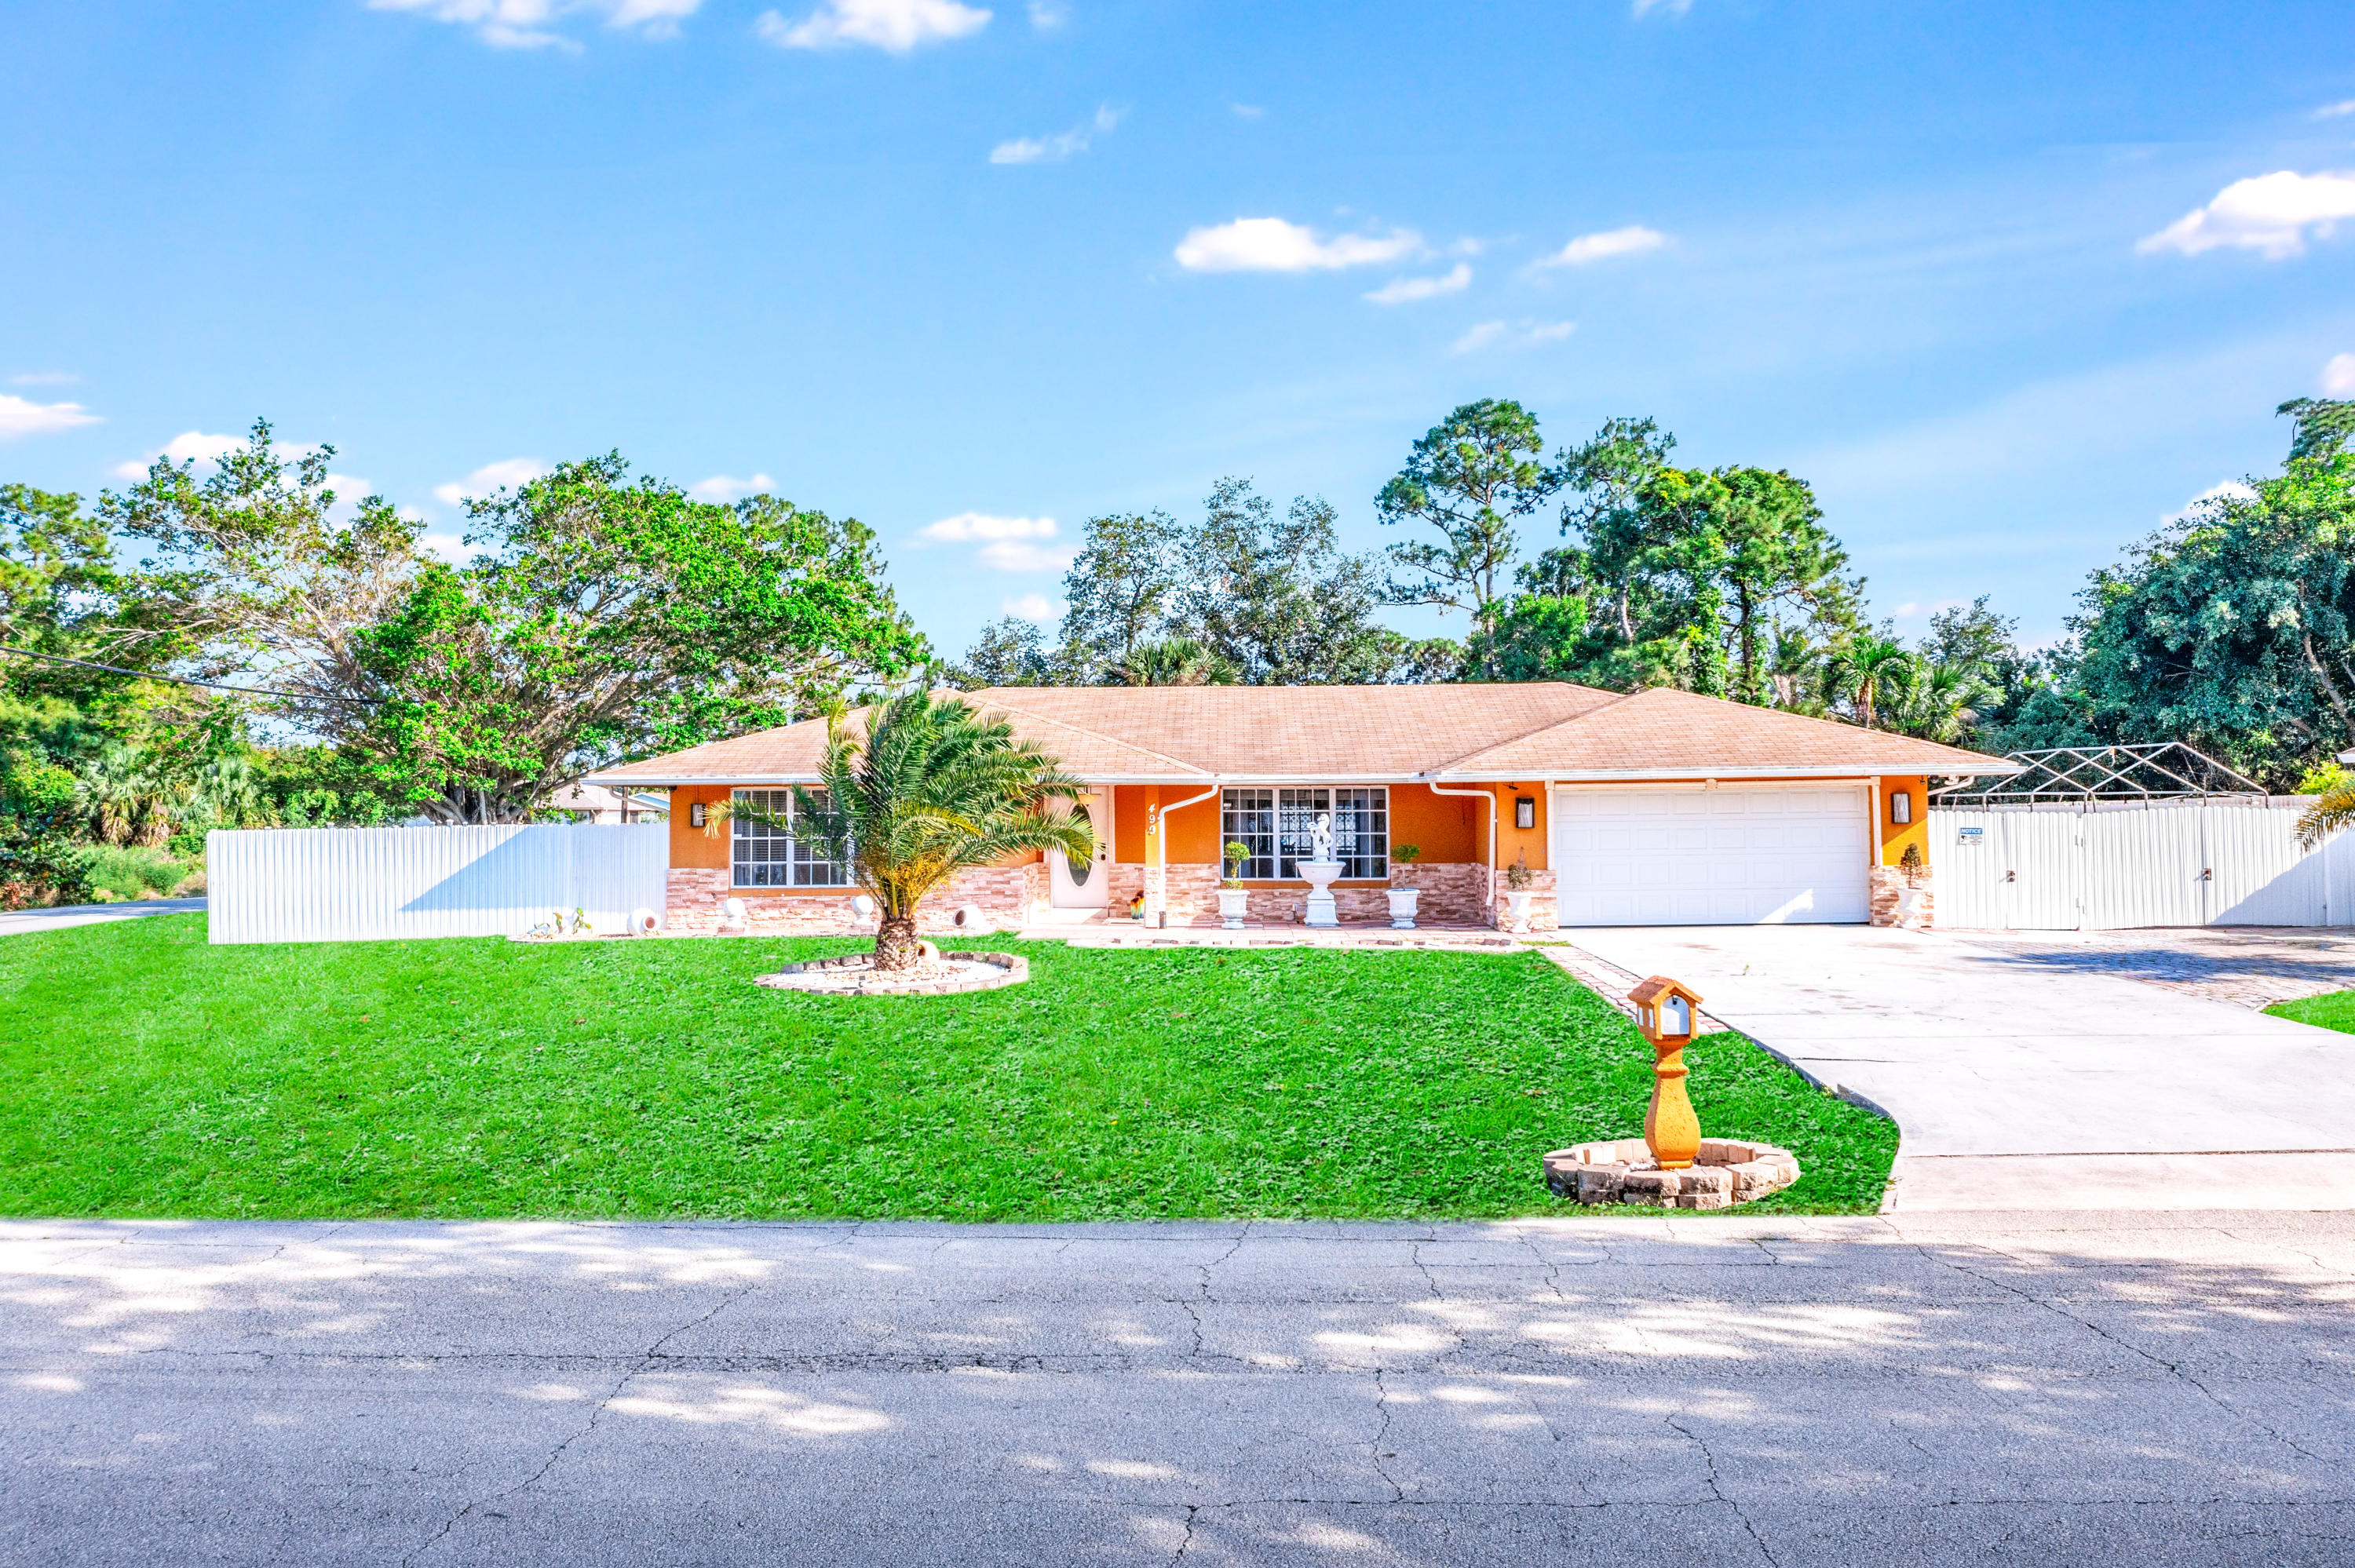 LARGE 3/2 * CBS CONSTRUCTION * POOL HOME * OVERSIZED LARGE CORNER LOT * GAS STOVE!!!Come Home to this BEAUTIFUL 3 Bedroom, 2 Bathroom plus an Office/Den. This home features: a GORGEOUS Fully Updated Kitchen with GAS STOVE, Granite Countertops and Tile Throughout. Smart Water Heater. A Large Screened-in Pool with plenty of room to entertain. Oversized Fenced-in Yard with Double Gates. Large Shed included. Large Driveway with plenty of room to store a Boat or an RV. Sprinkler System on Well Water to save you money.  AMAZING location between Crosstown and Prima Vista with close access to Beaches, Mets Spring Training & Minor League Complex, Major Roads, Schools, Parks, Shops, Restaurants, etc.